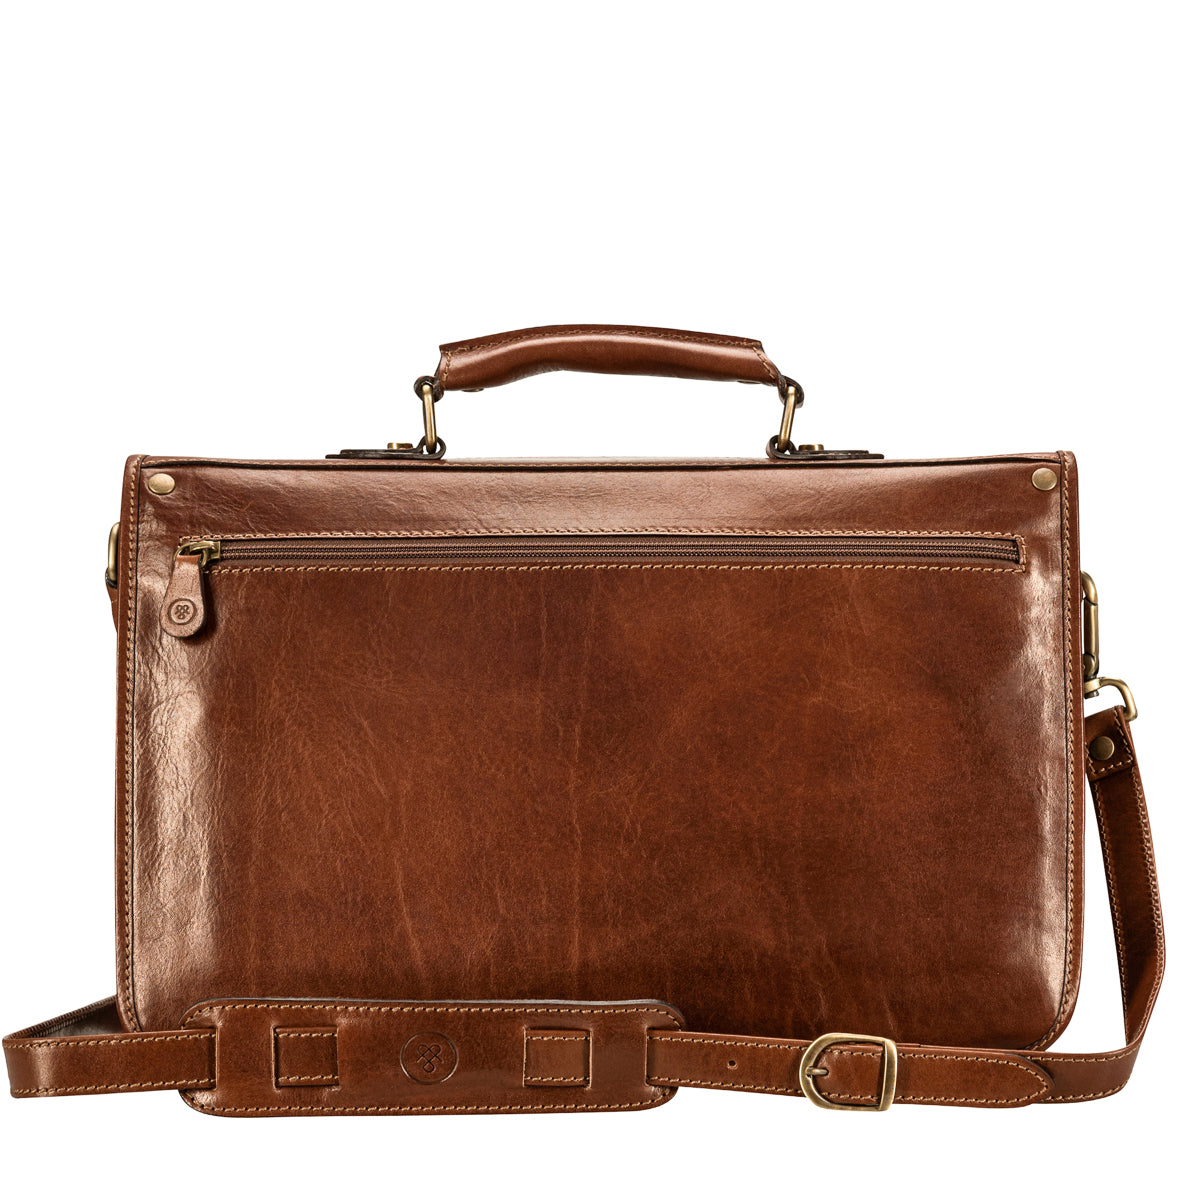 Image 4 of the 'Jesolo Tre' Chestnut Veg-Tanned Leather Satchel